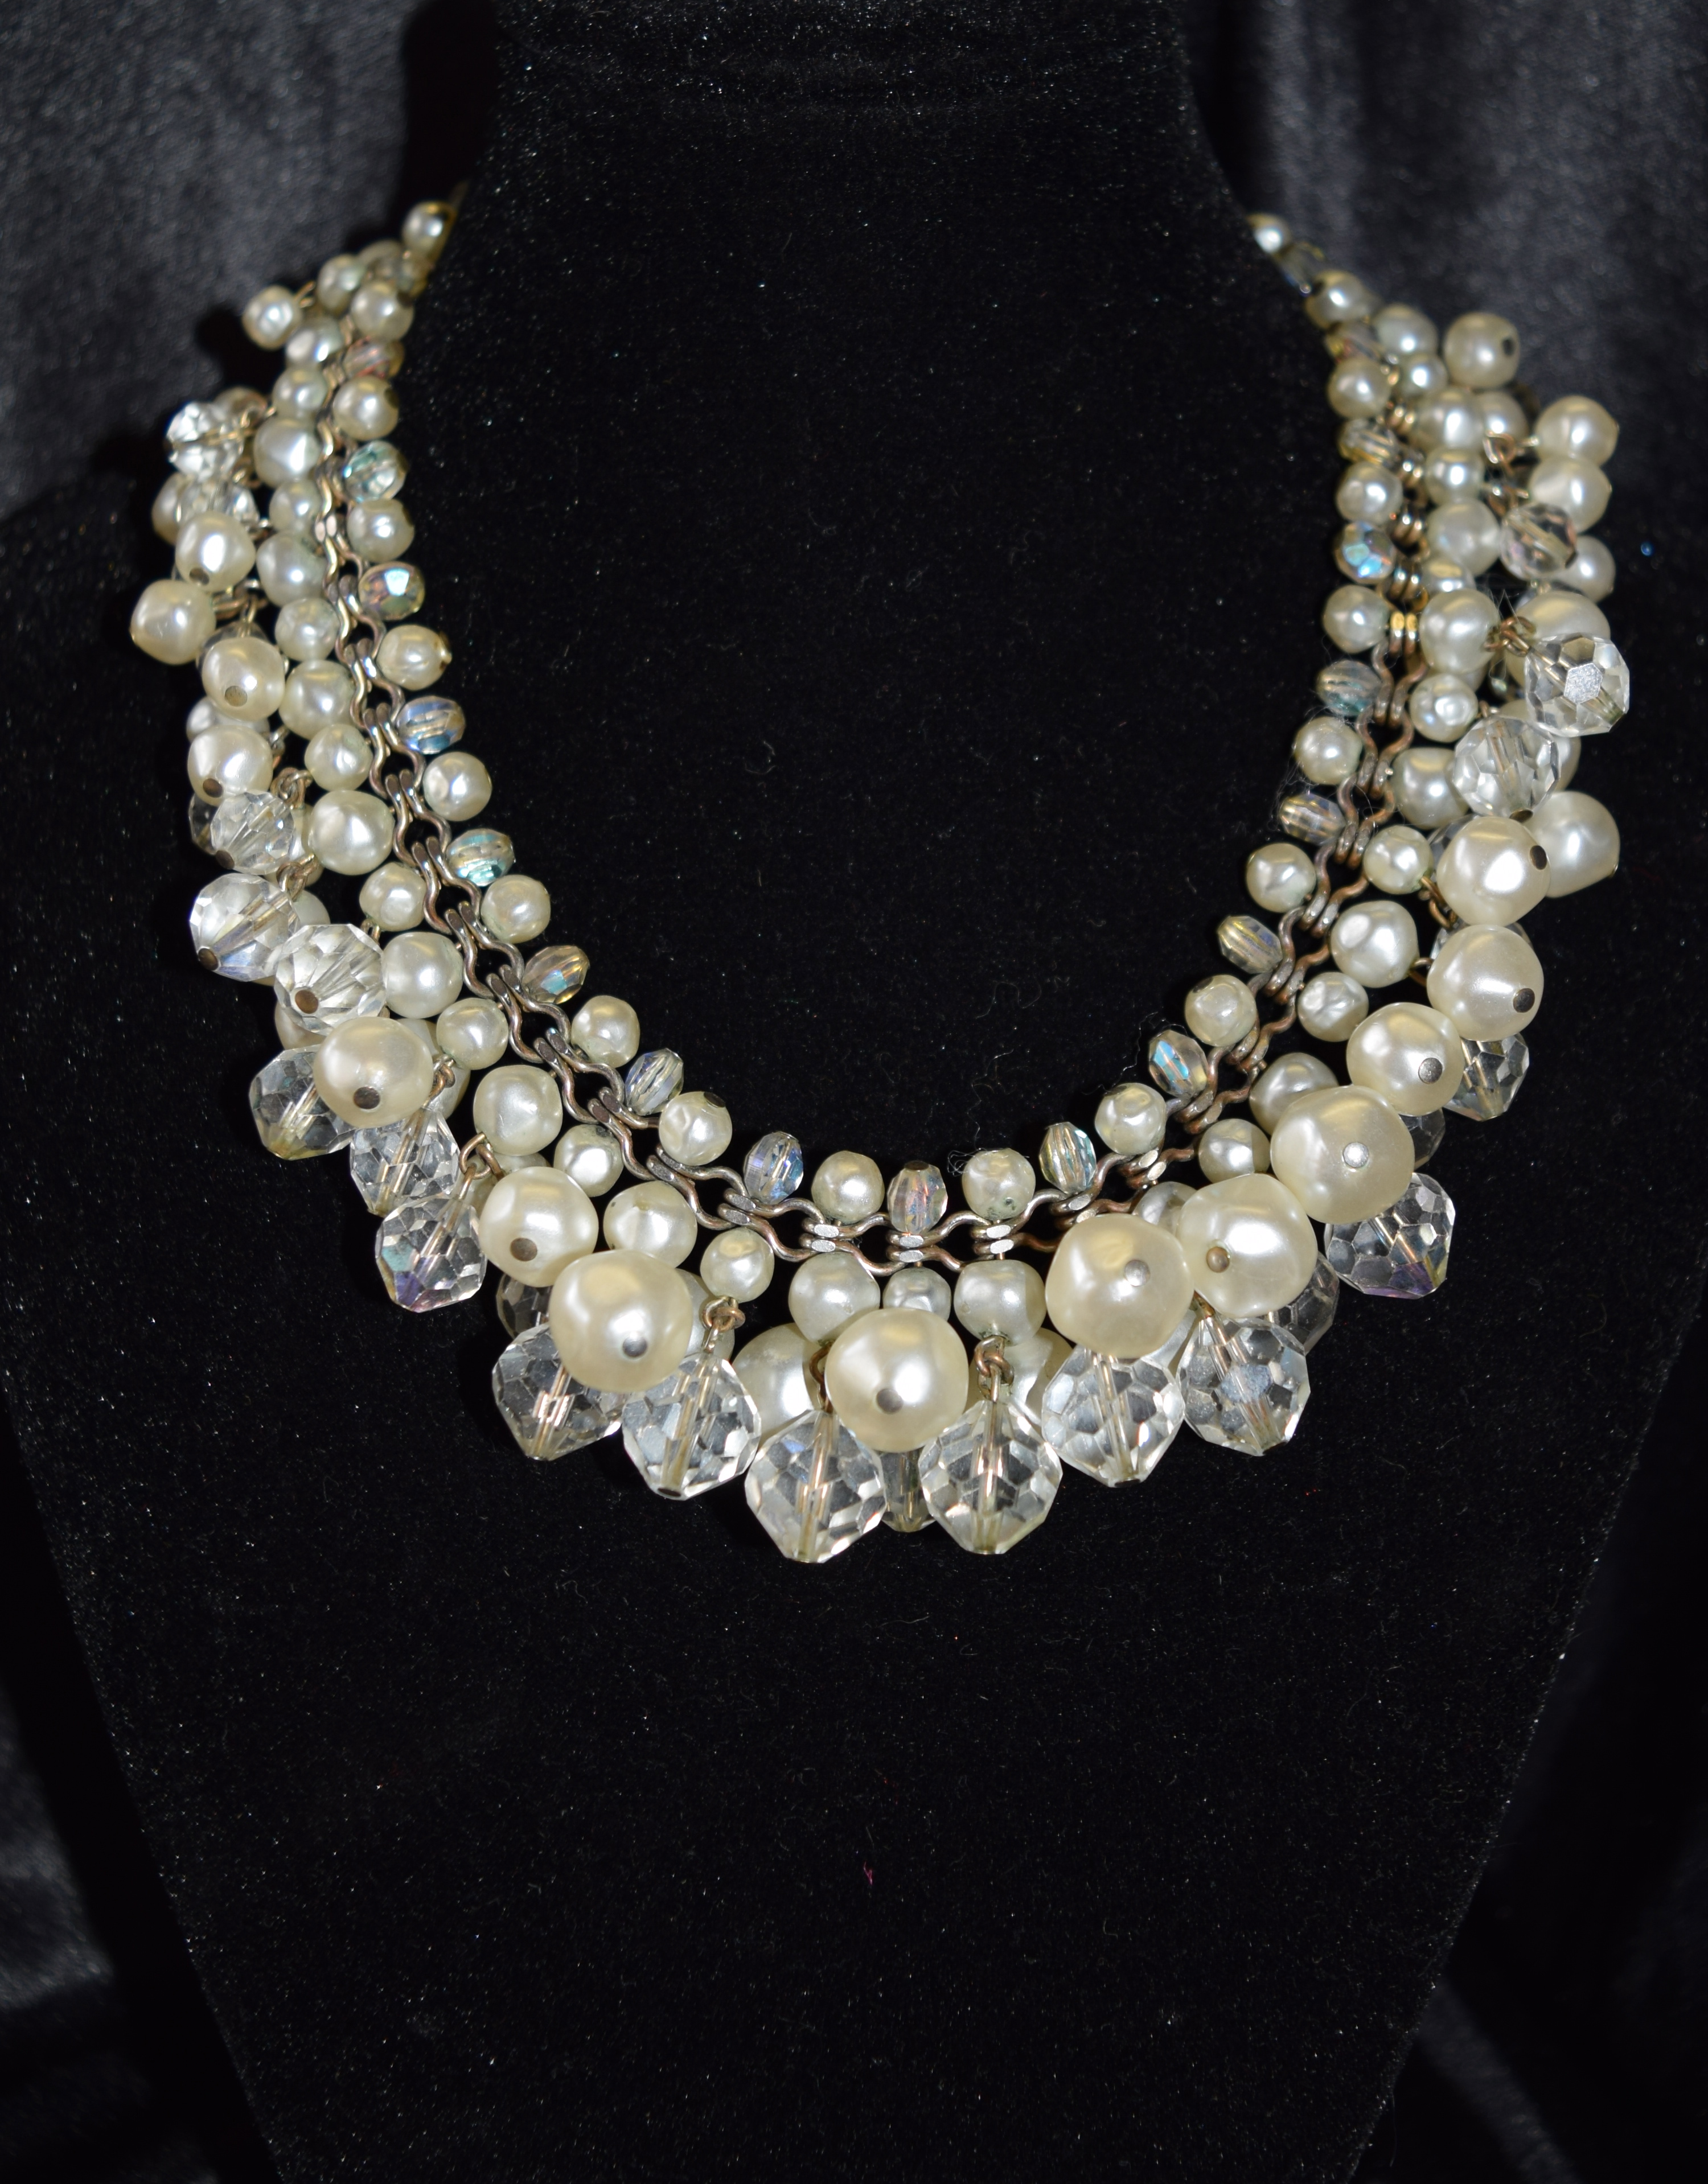 Wedding Necklaces & Necklace Sets